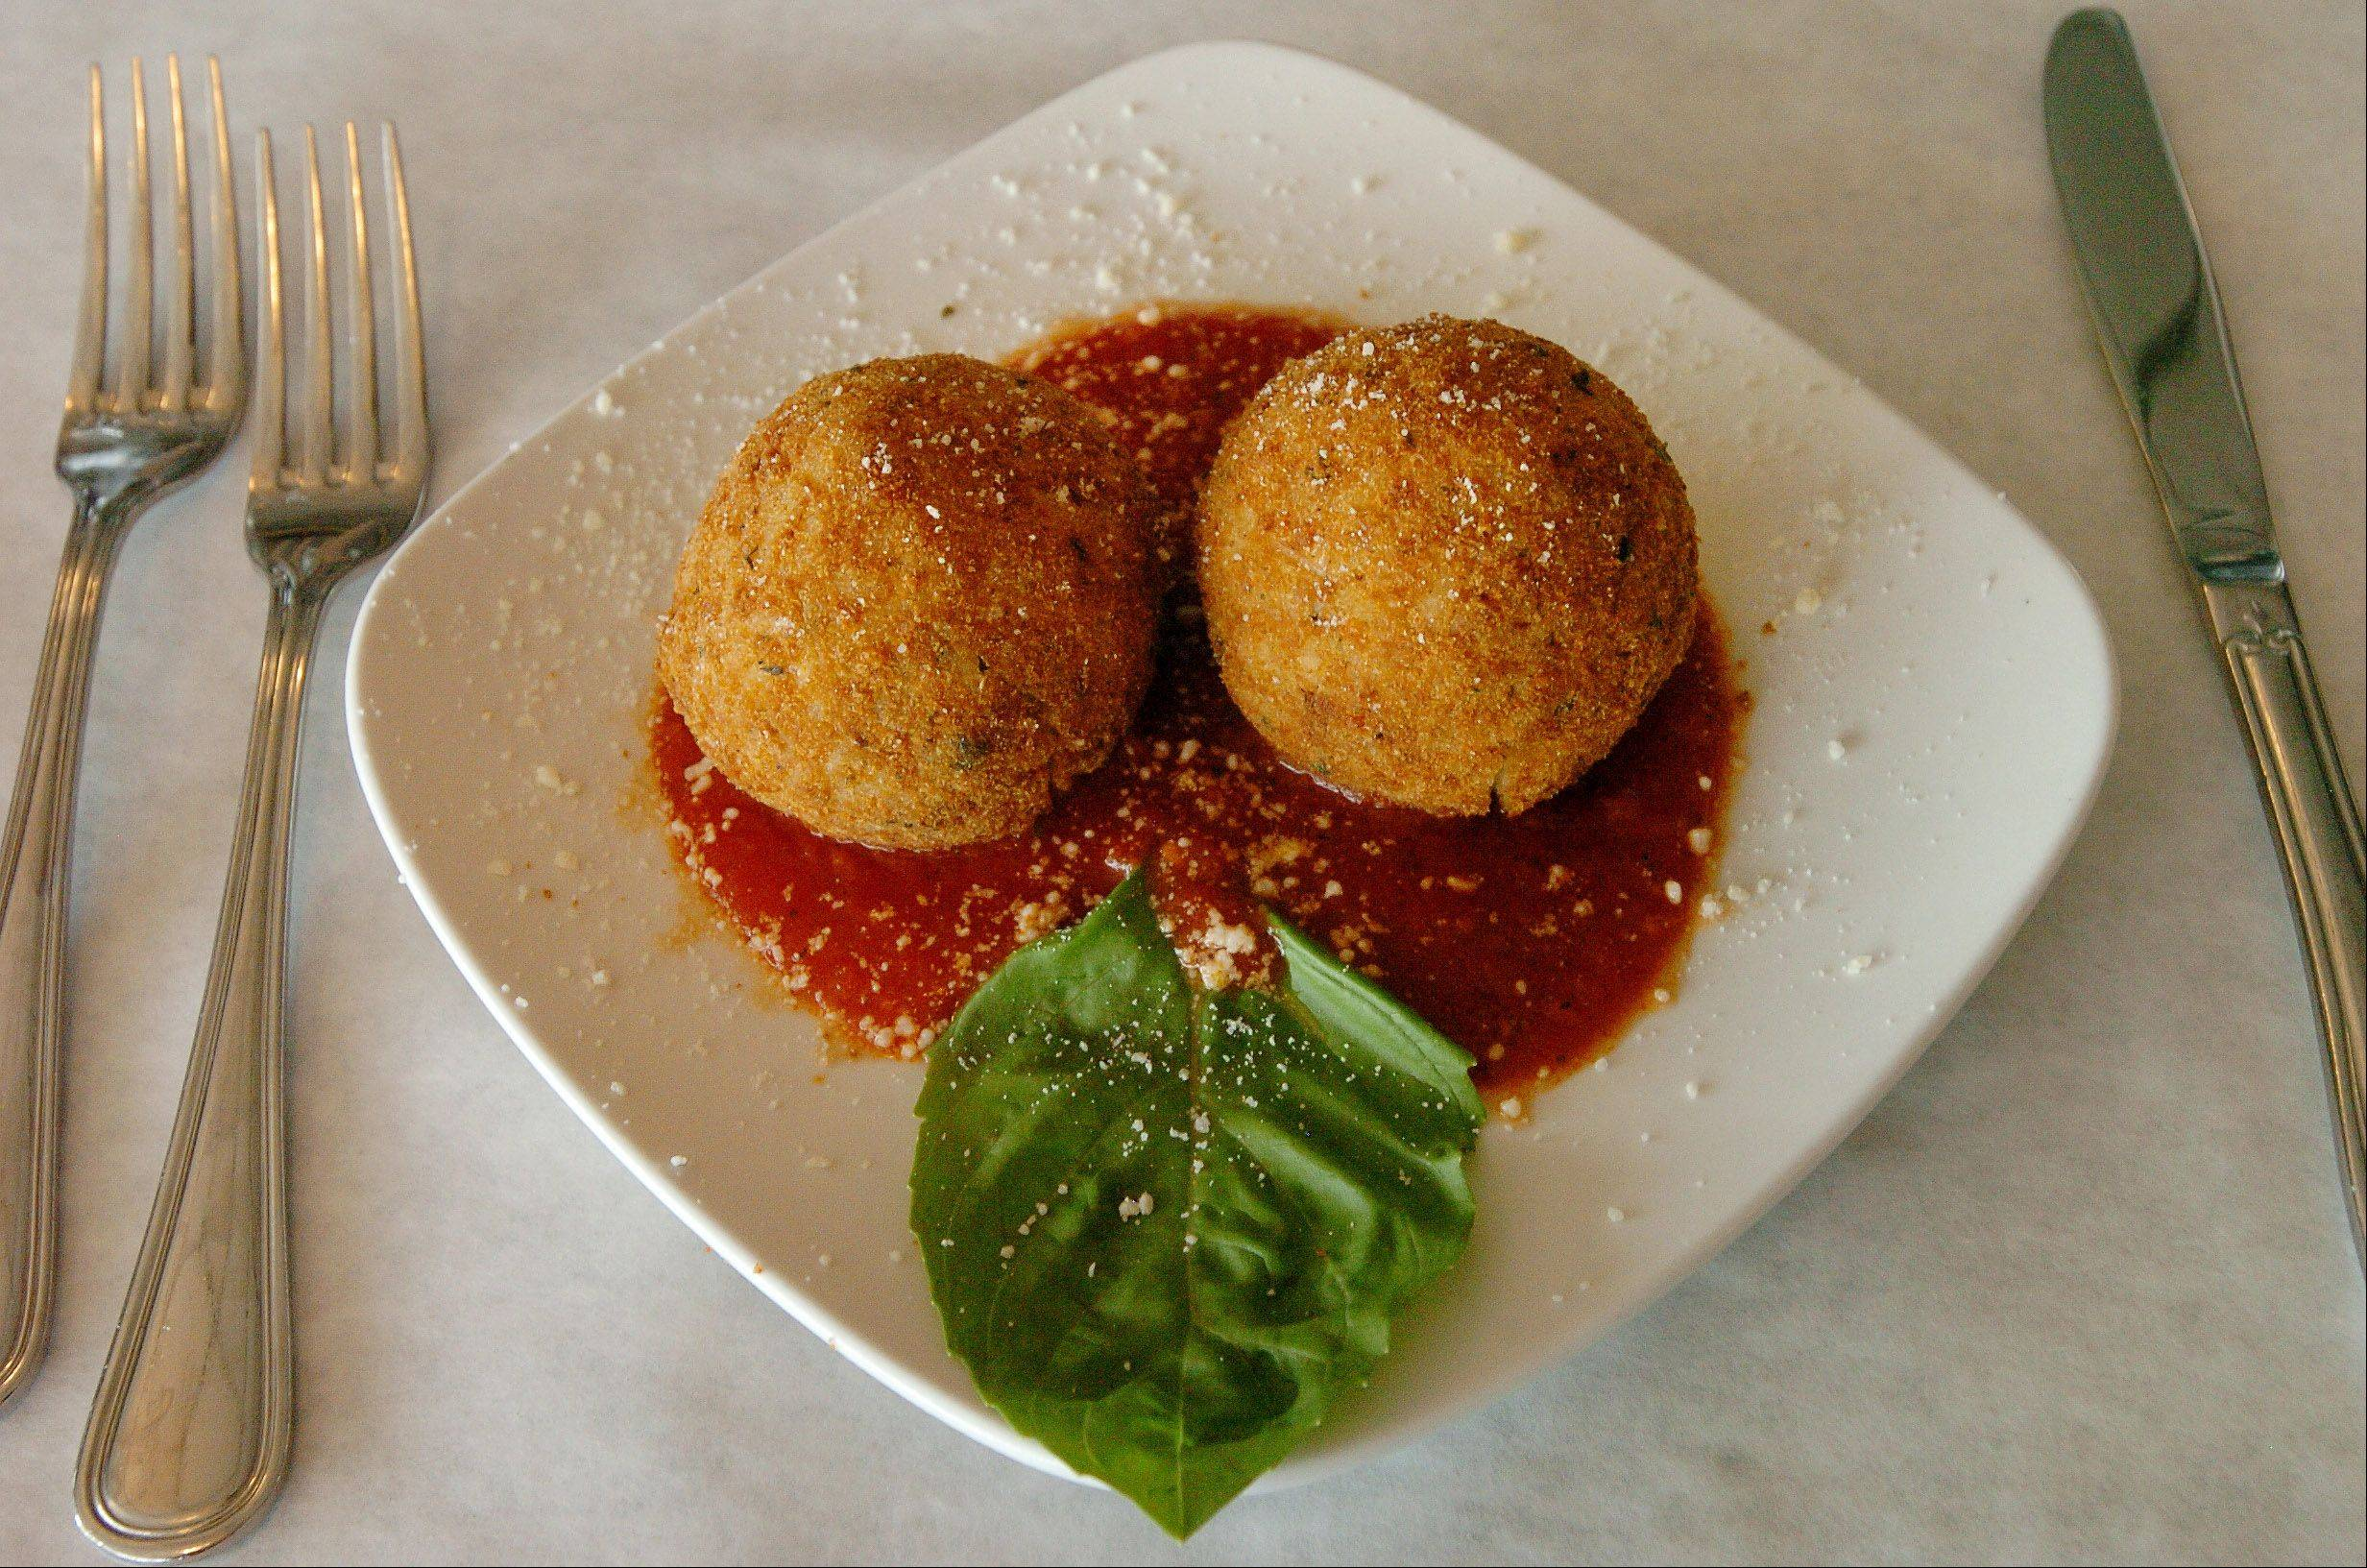 Arancini di Riso at Di Benedetto Trattoria in Hoffman Estates.